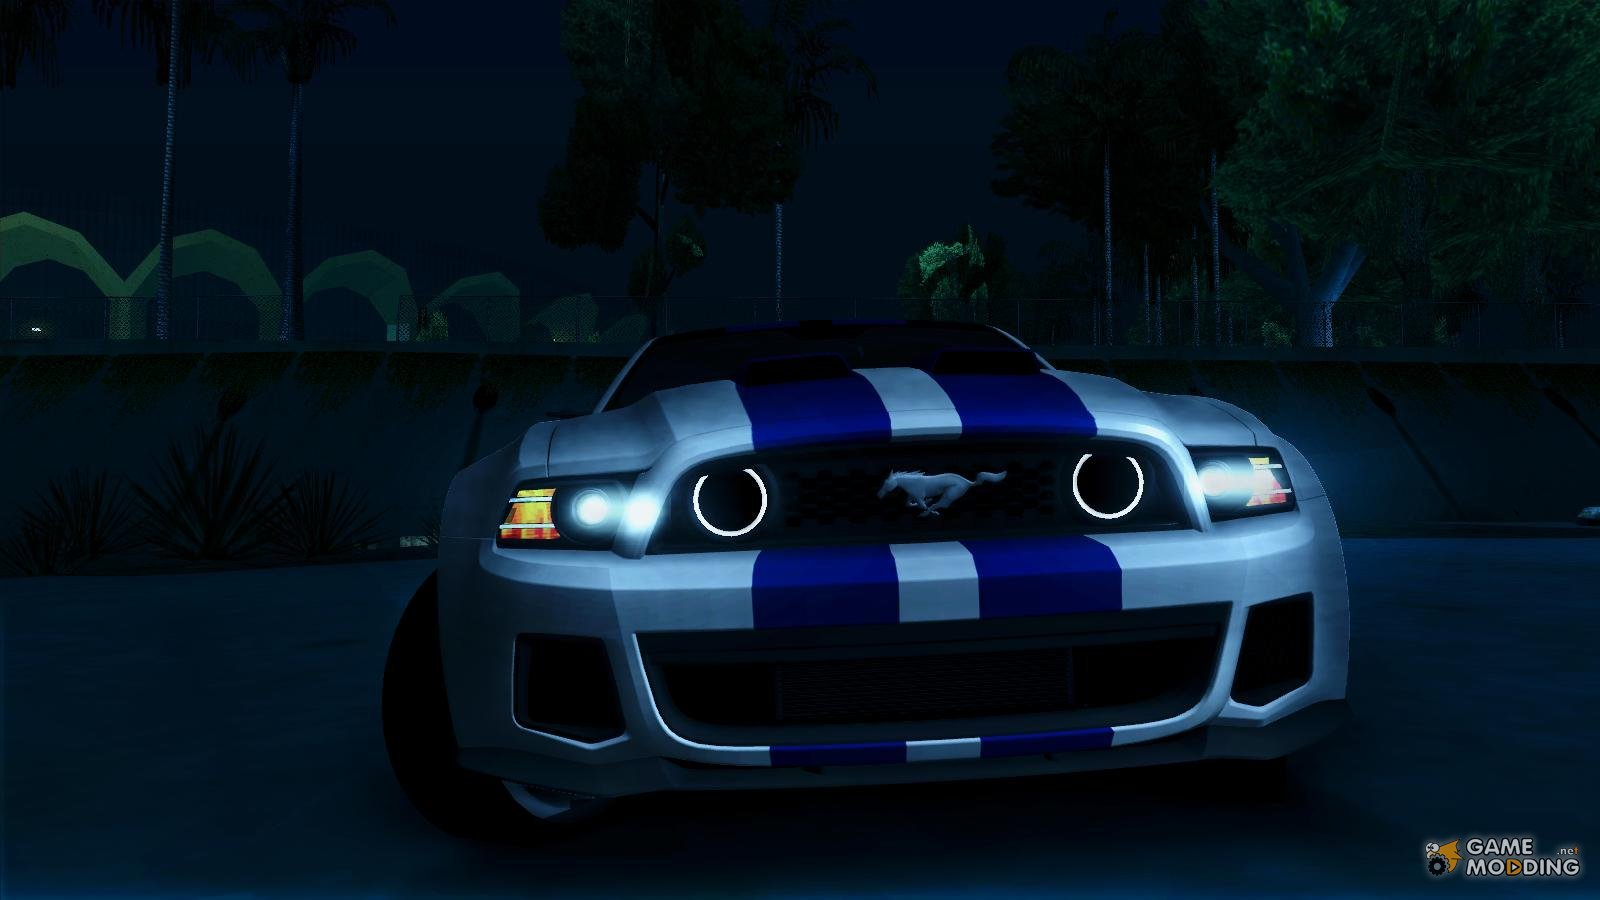 47 Mustang Need For Speed Wallpaper On Wallpapersafari